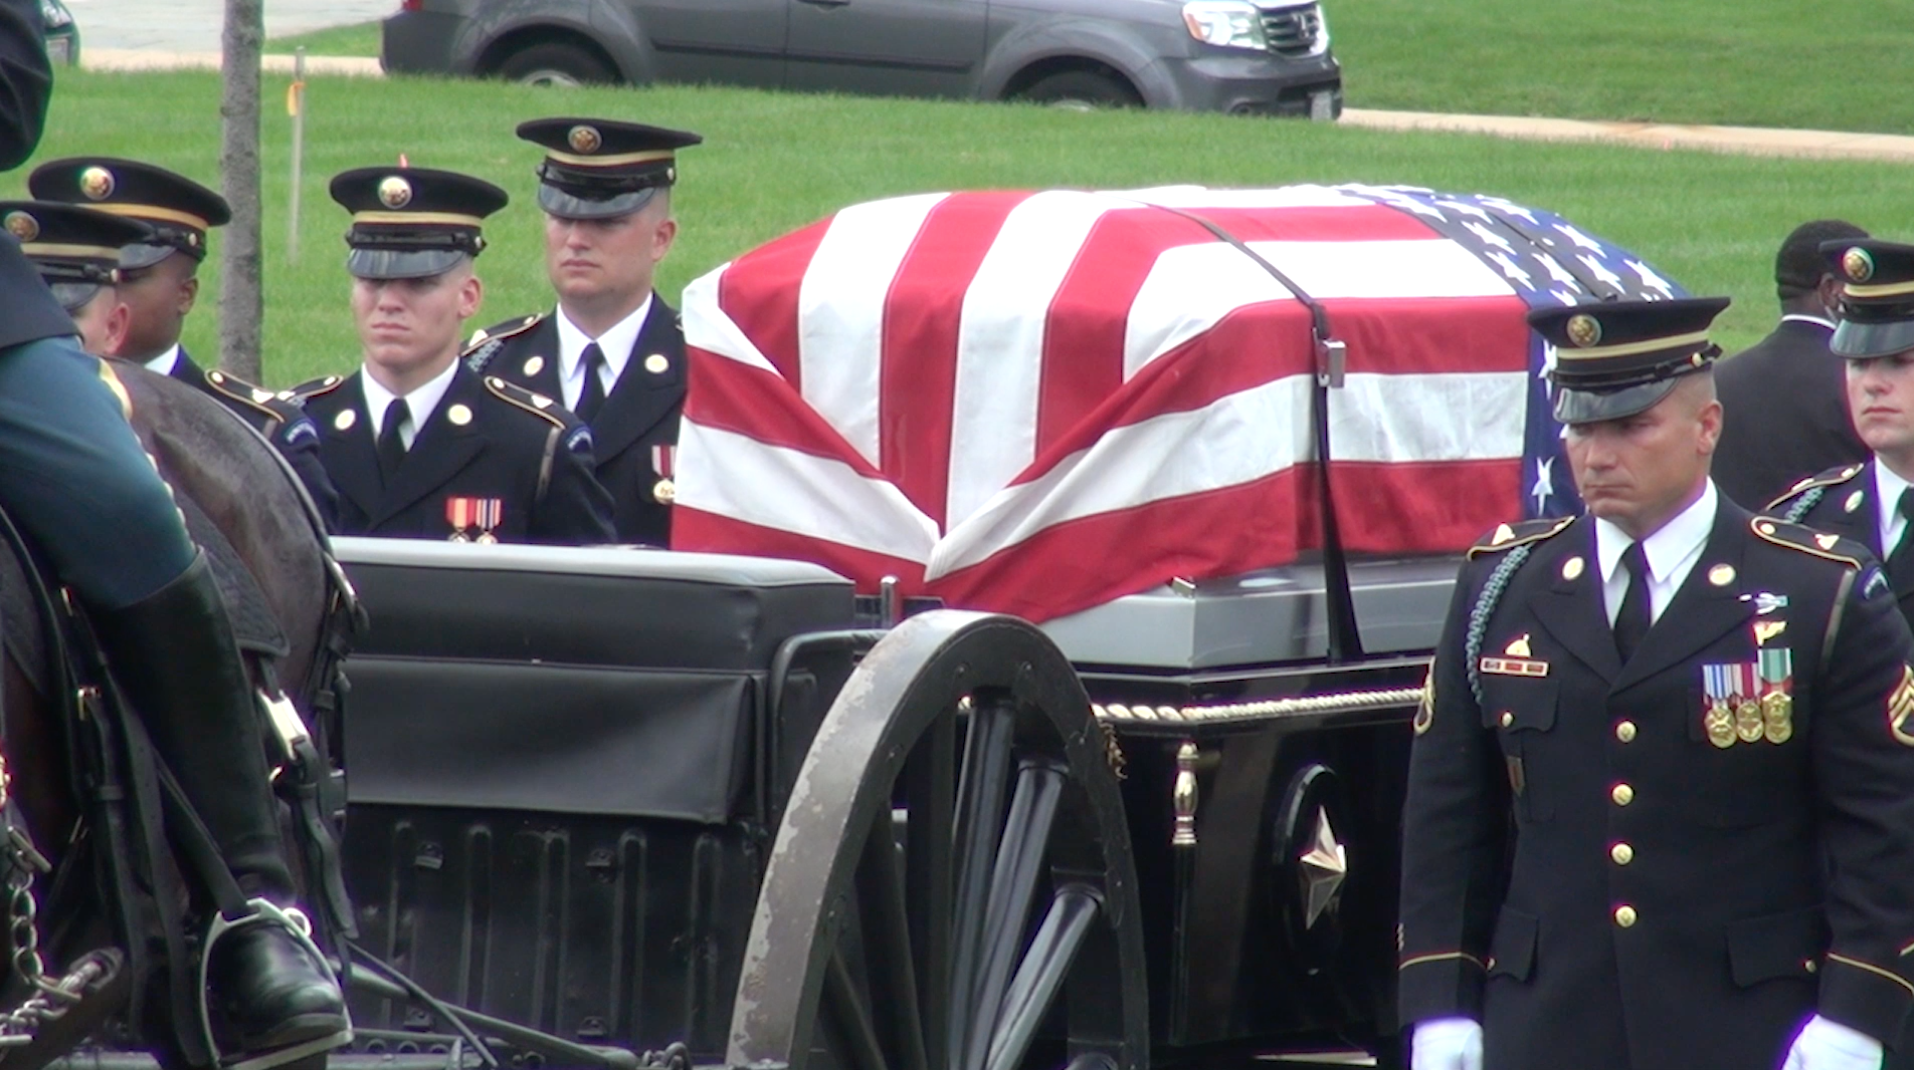 Missing Korean War soldier laid to rest in Arlington after 64 years